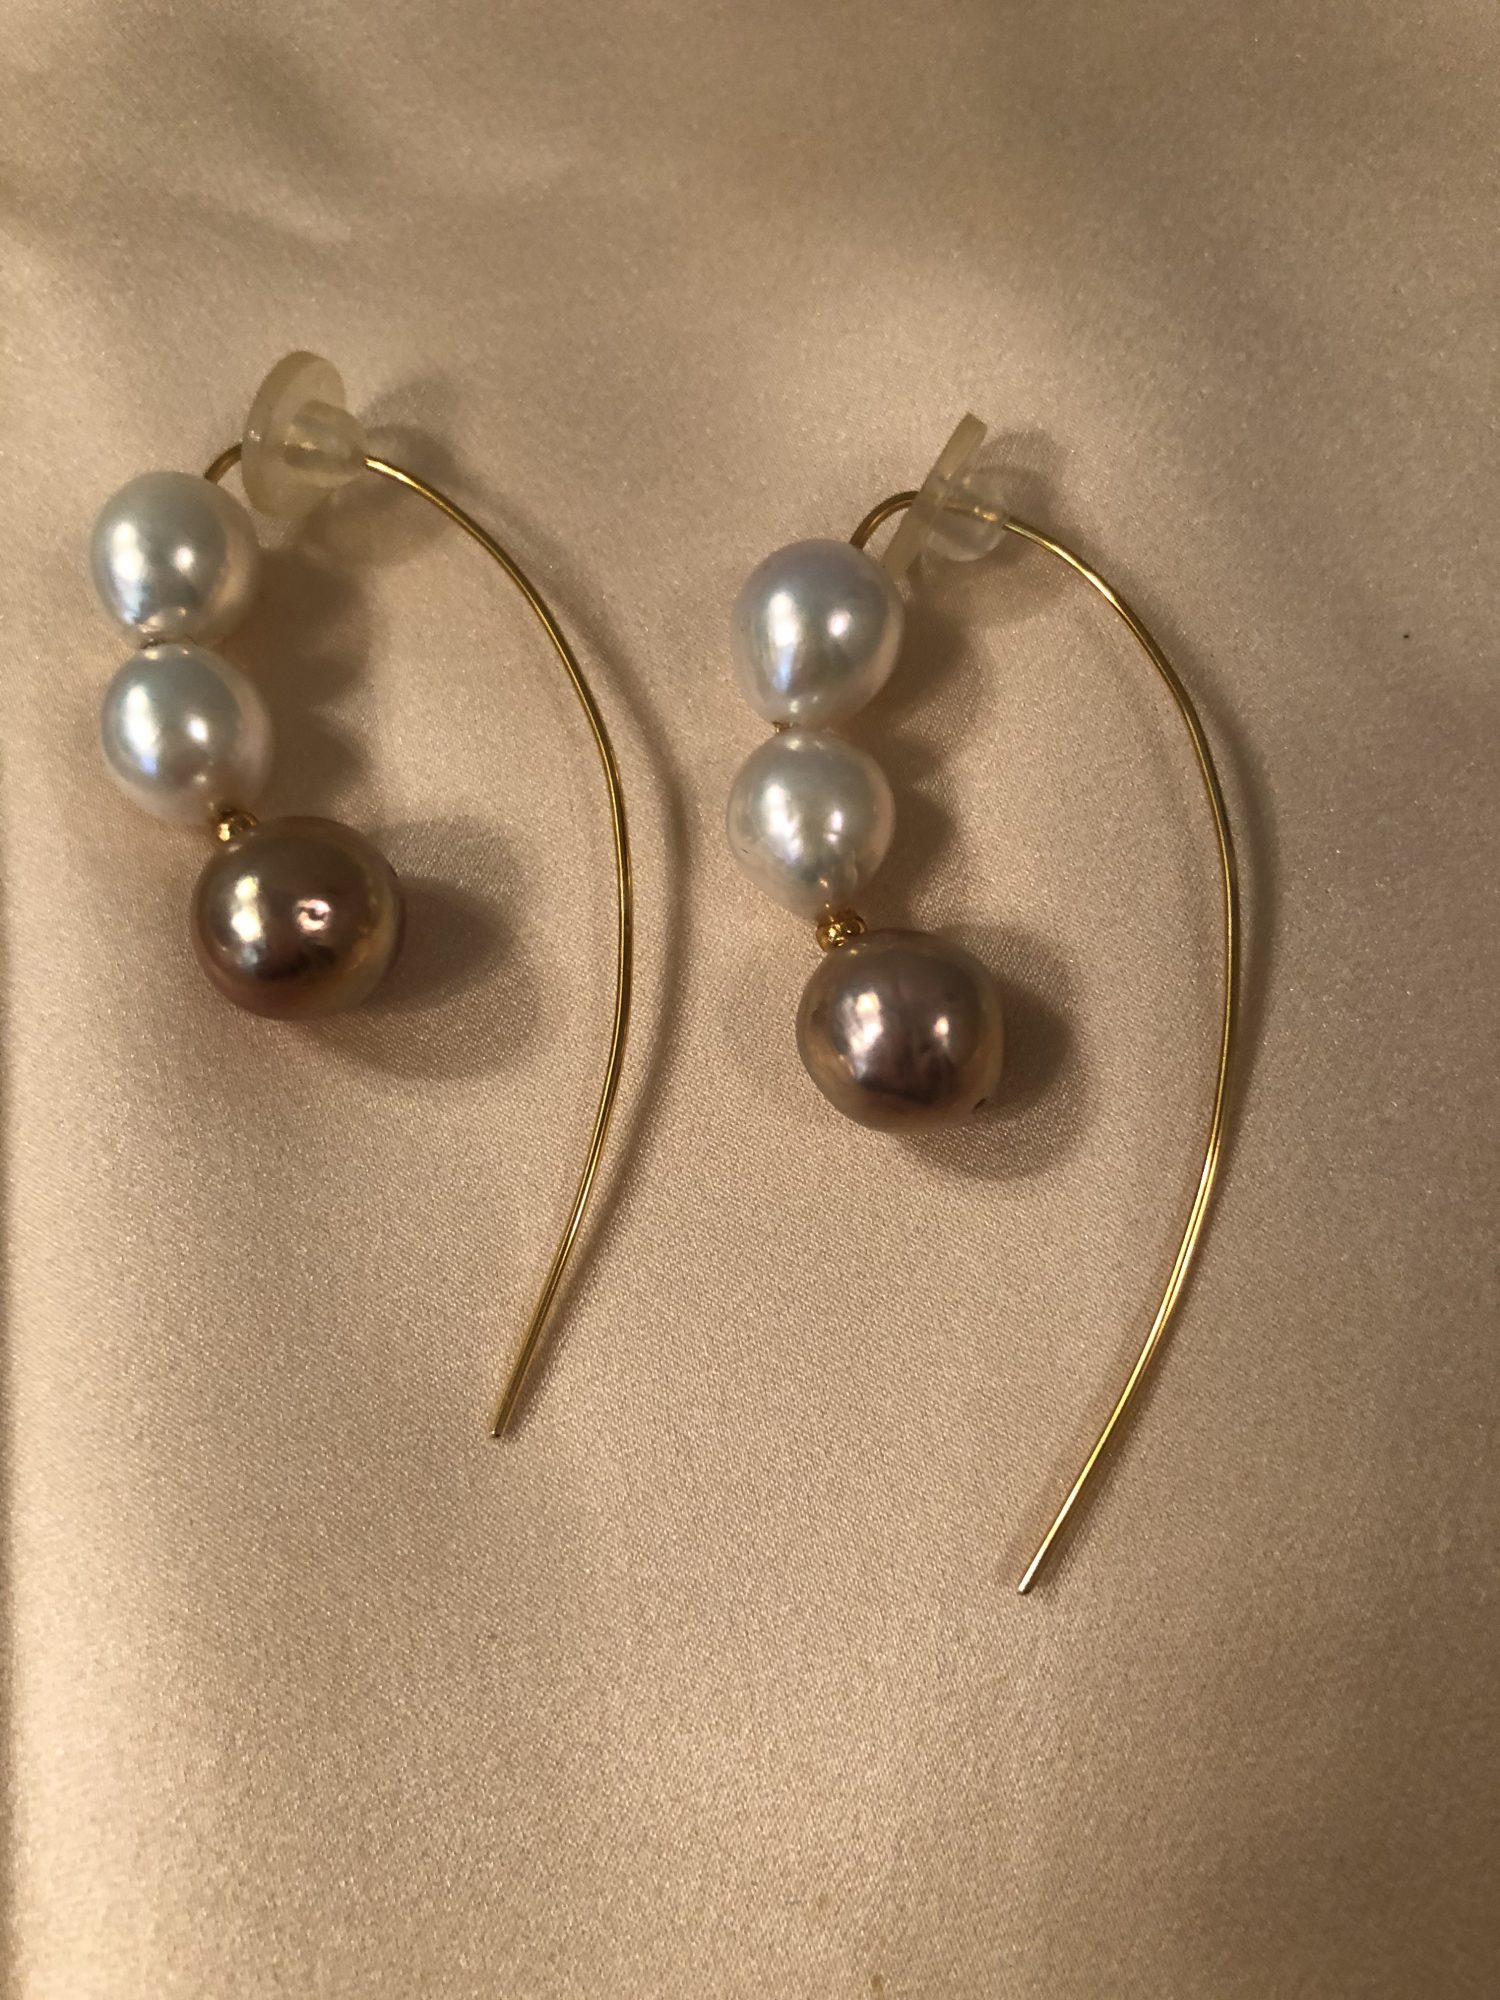 3 pearl earrings